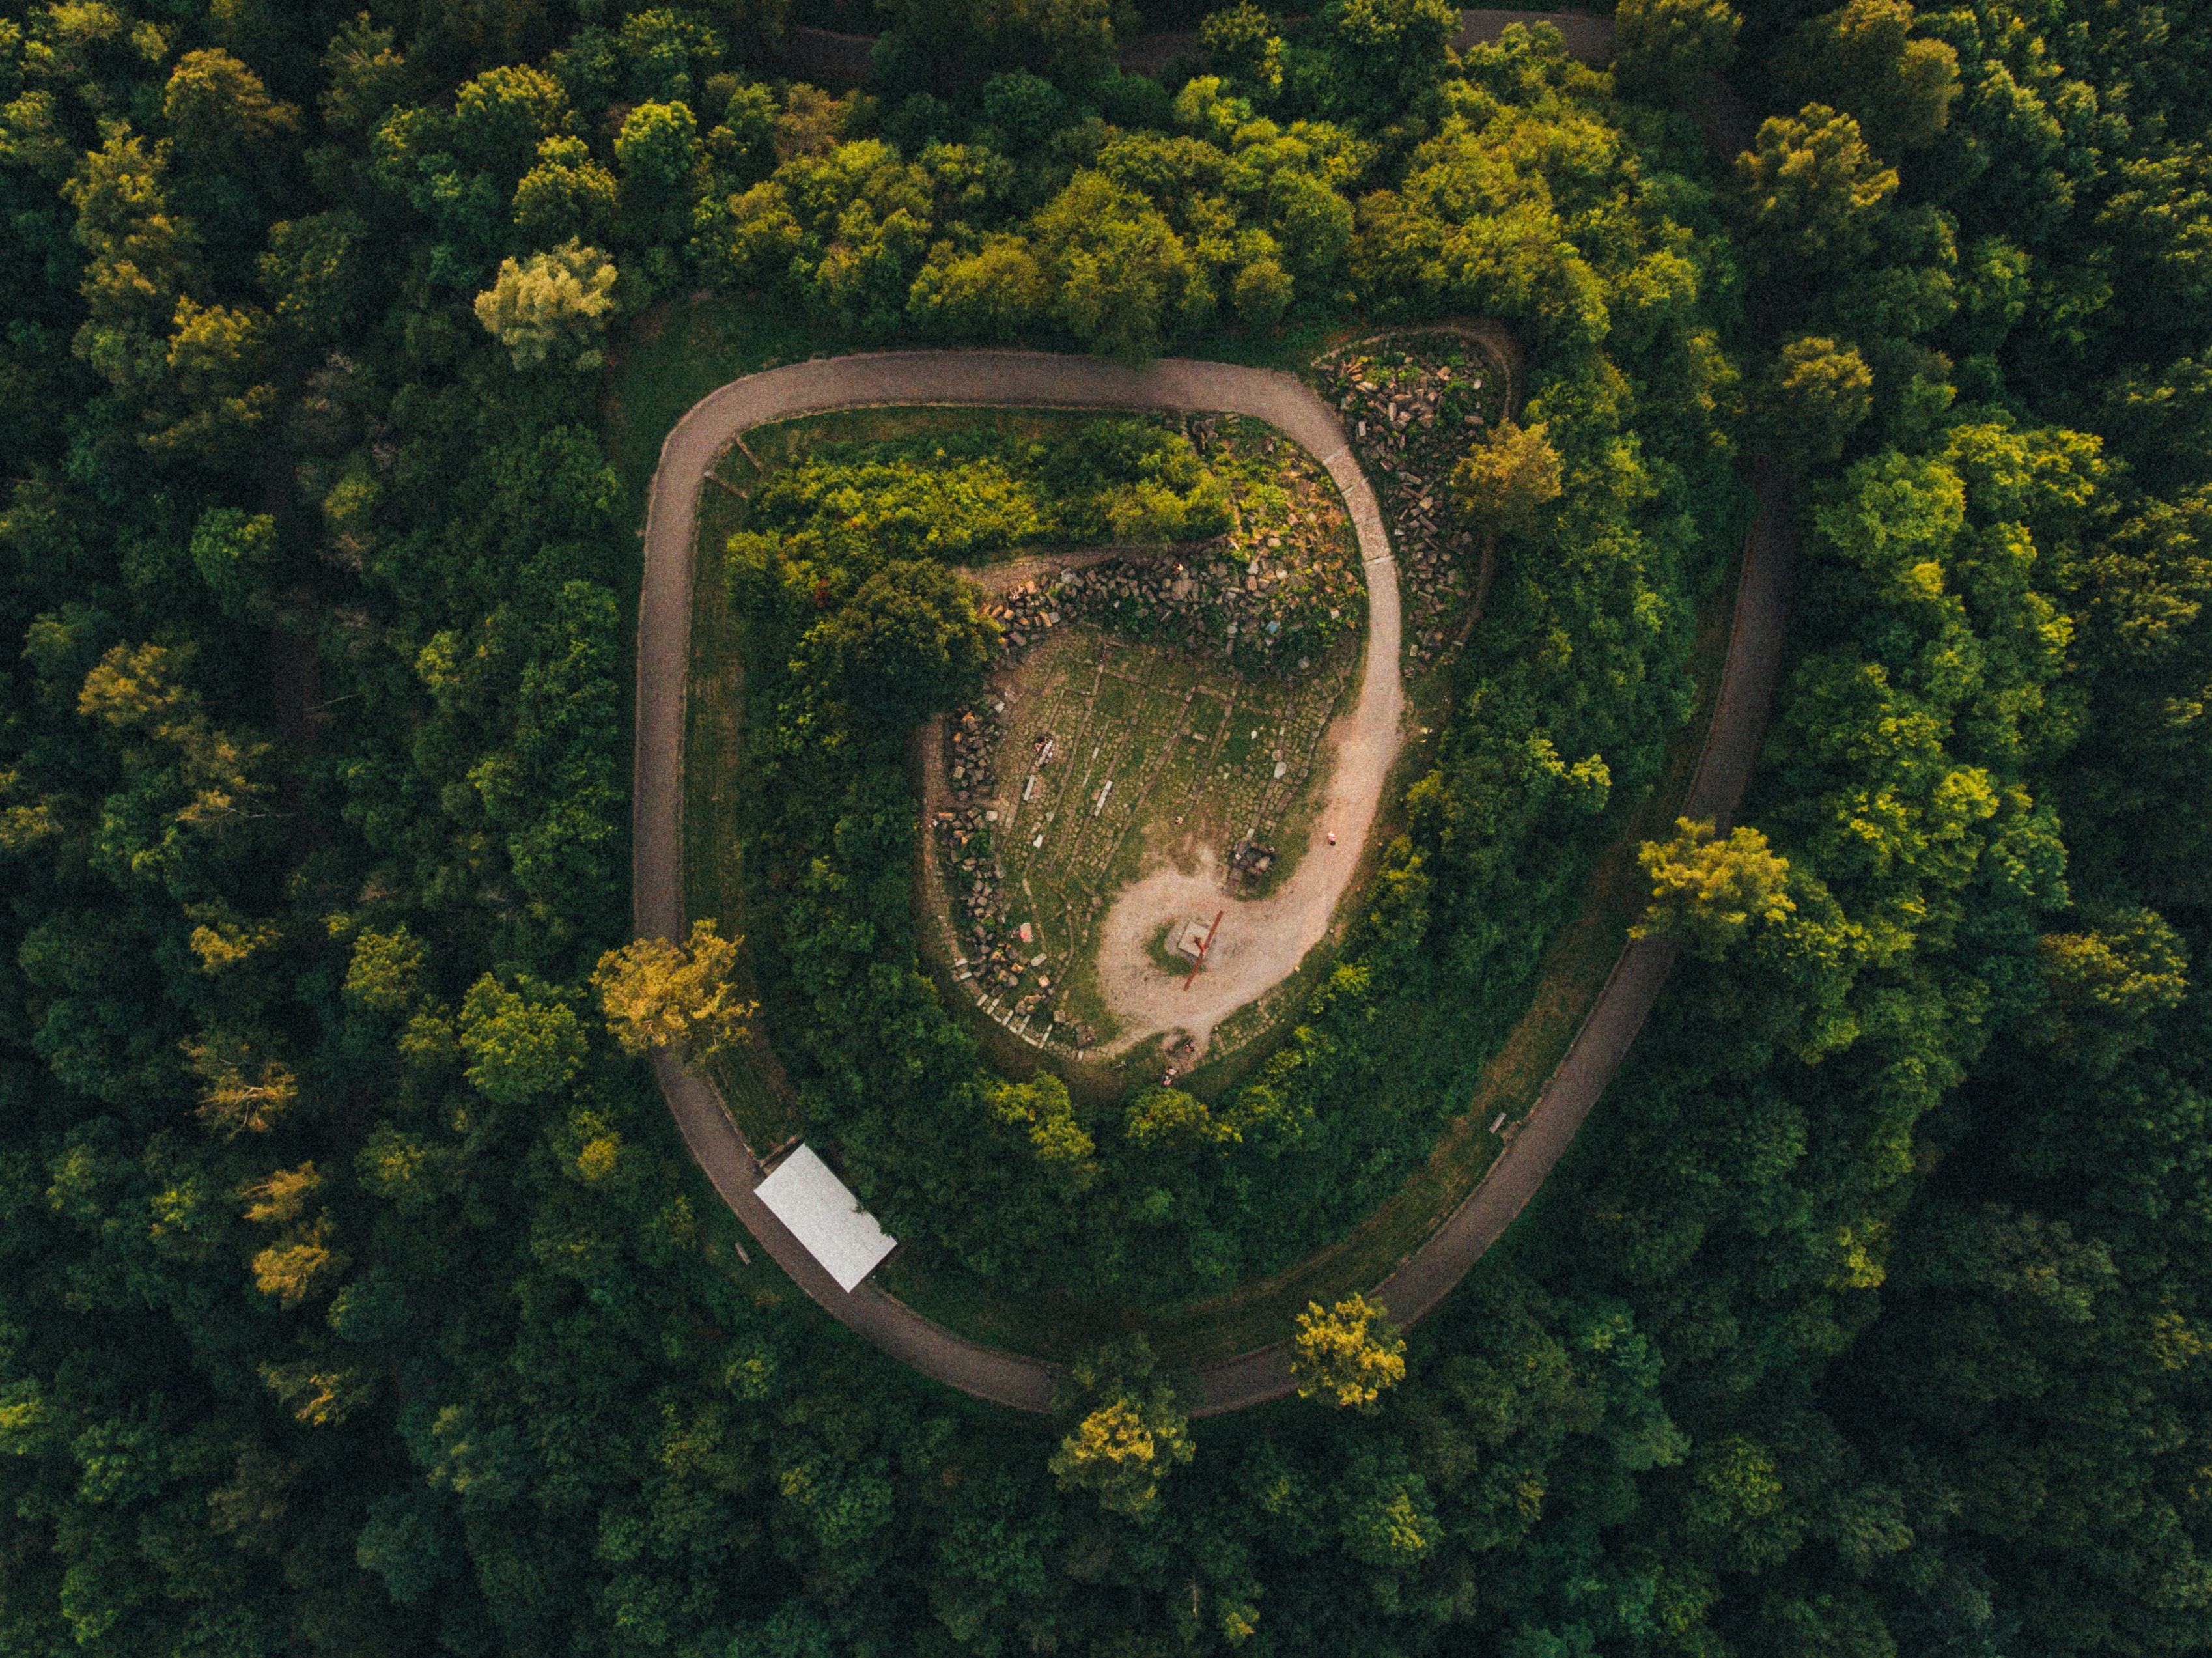 A drone shot of a spiral road in a forest